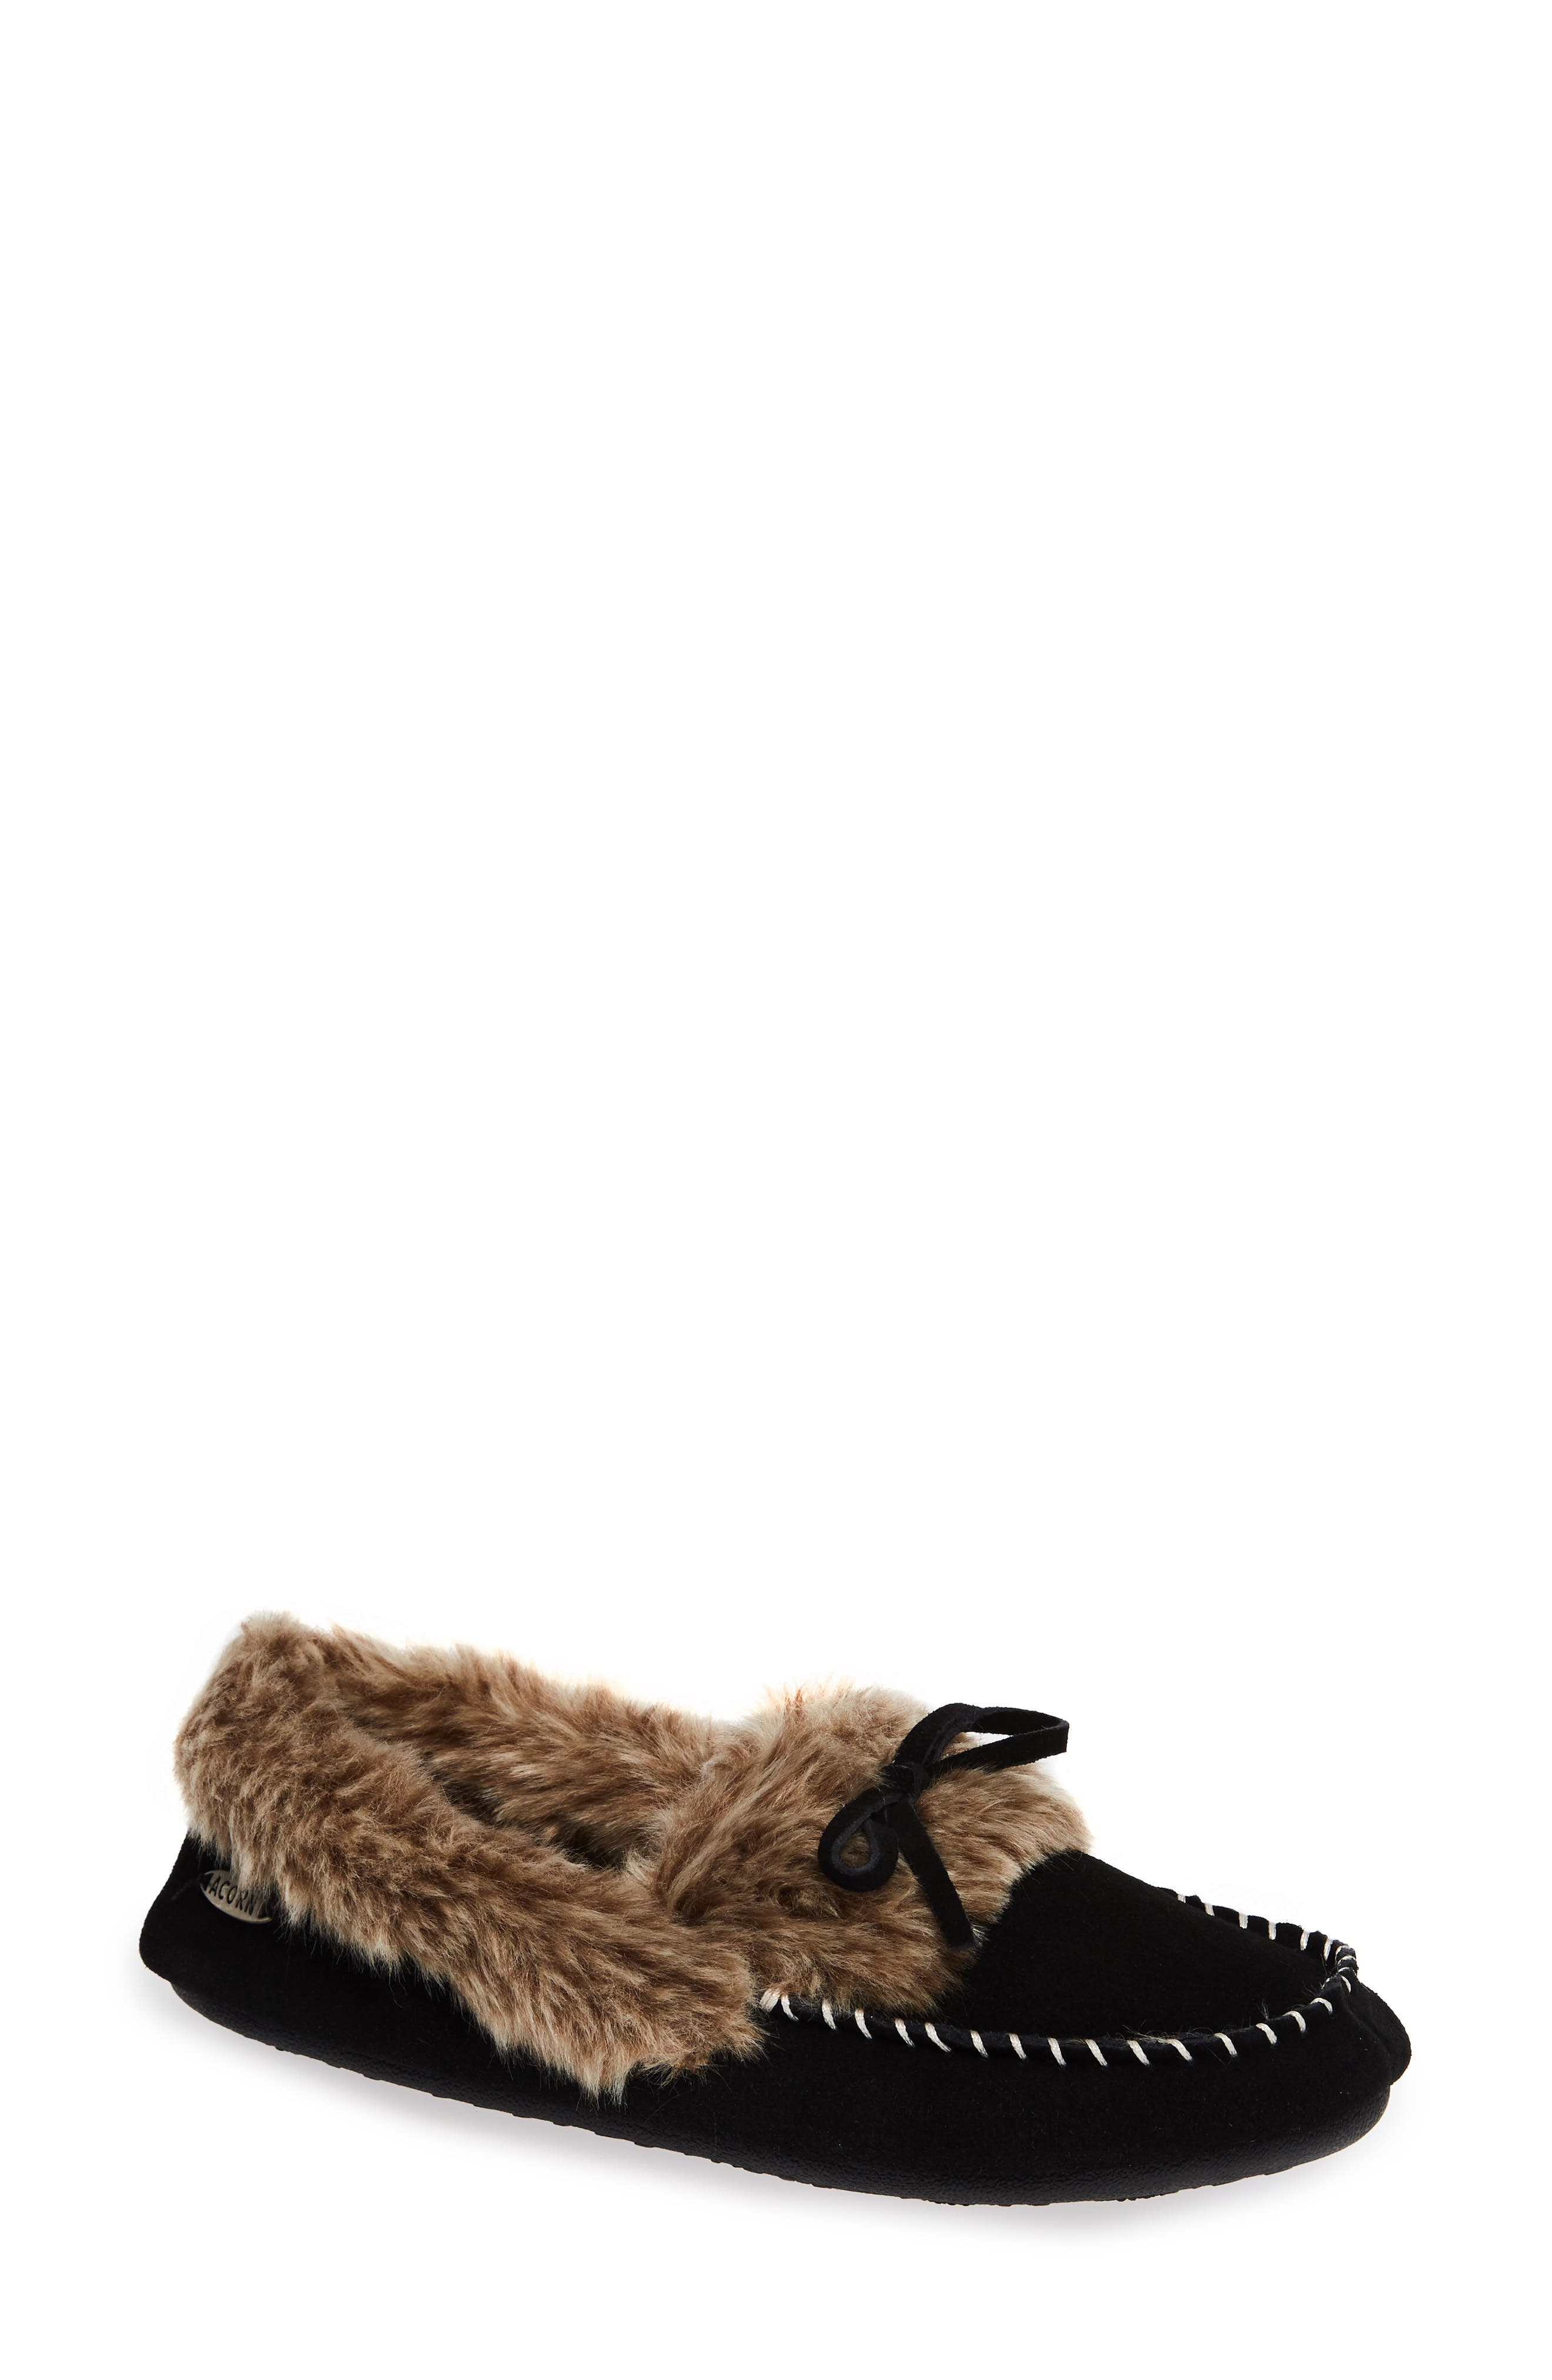 ACORN, Faux Fur Trim Moccasin Indoor/Outdoor Slipper, Main thumbnail 1, color, BLACK SUEDE